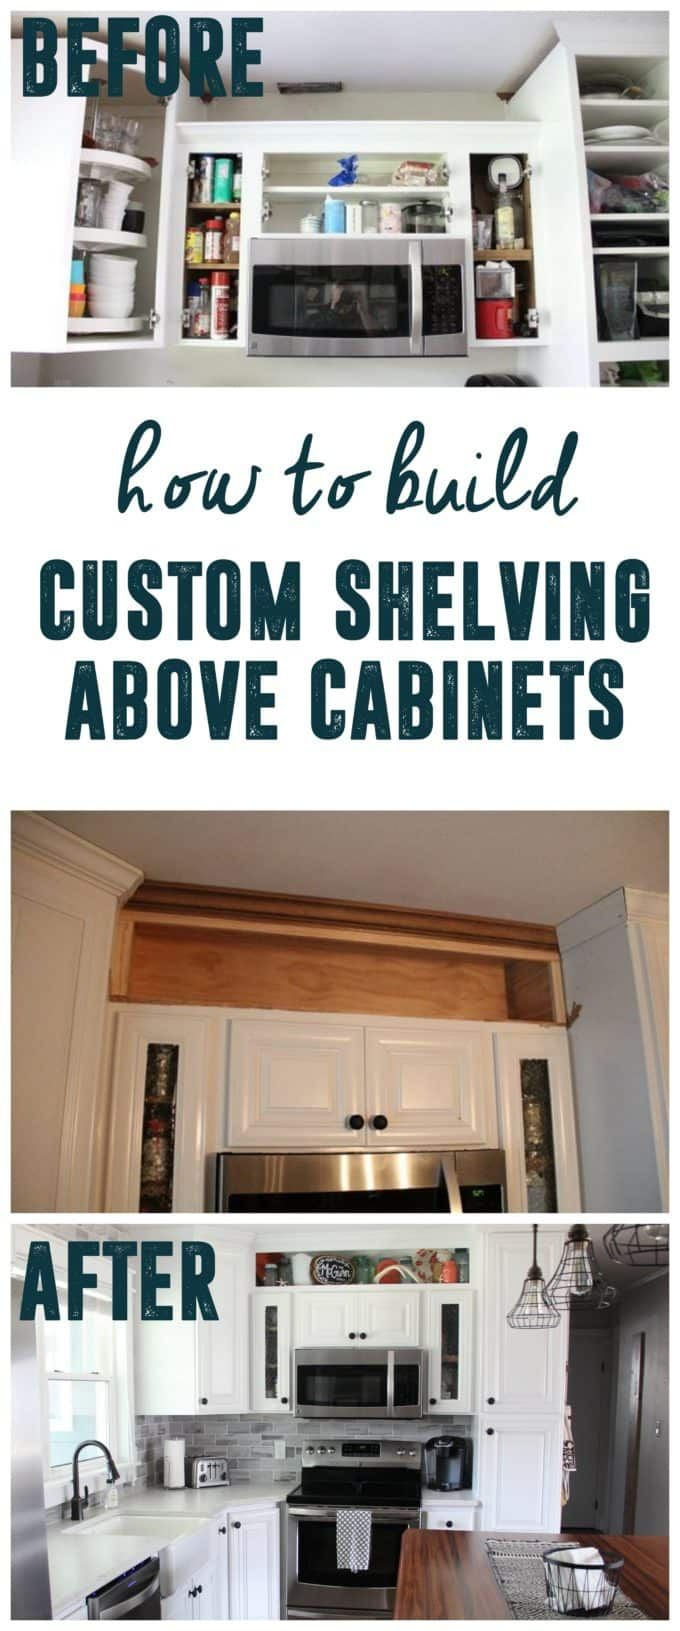 How to Build Open Shelving Above Cabinets for a Custom ...